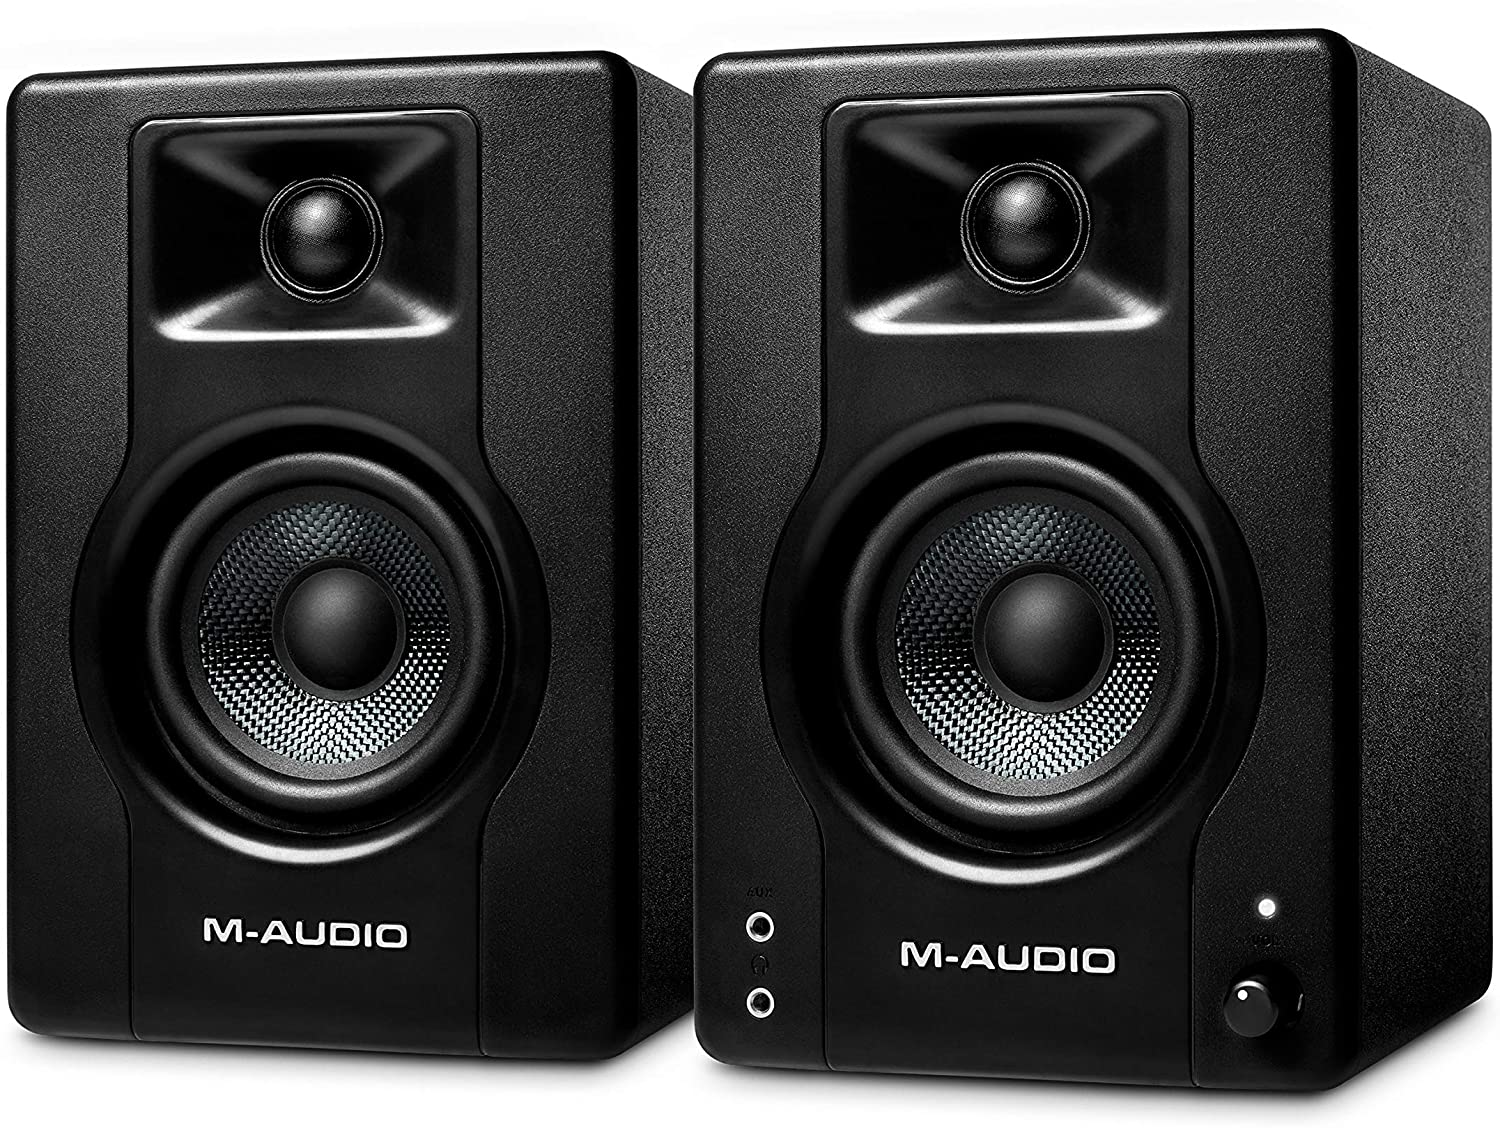 M-Audio BX3-120-Watt Powered Desktop Computer Speakers/Studio Monitors for Gaming, Music Production, Live Streaming and Podcasting (BX3 Pair)